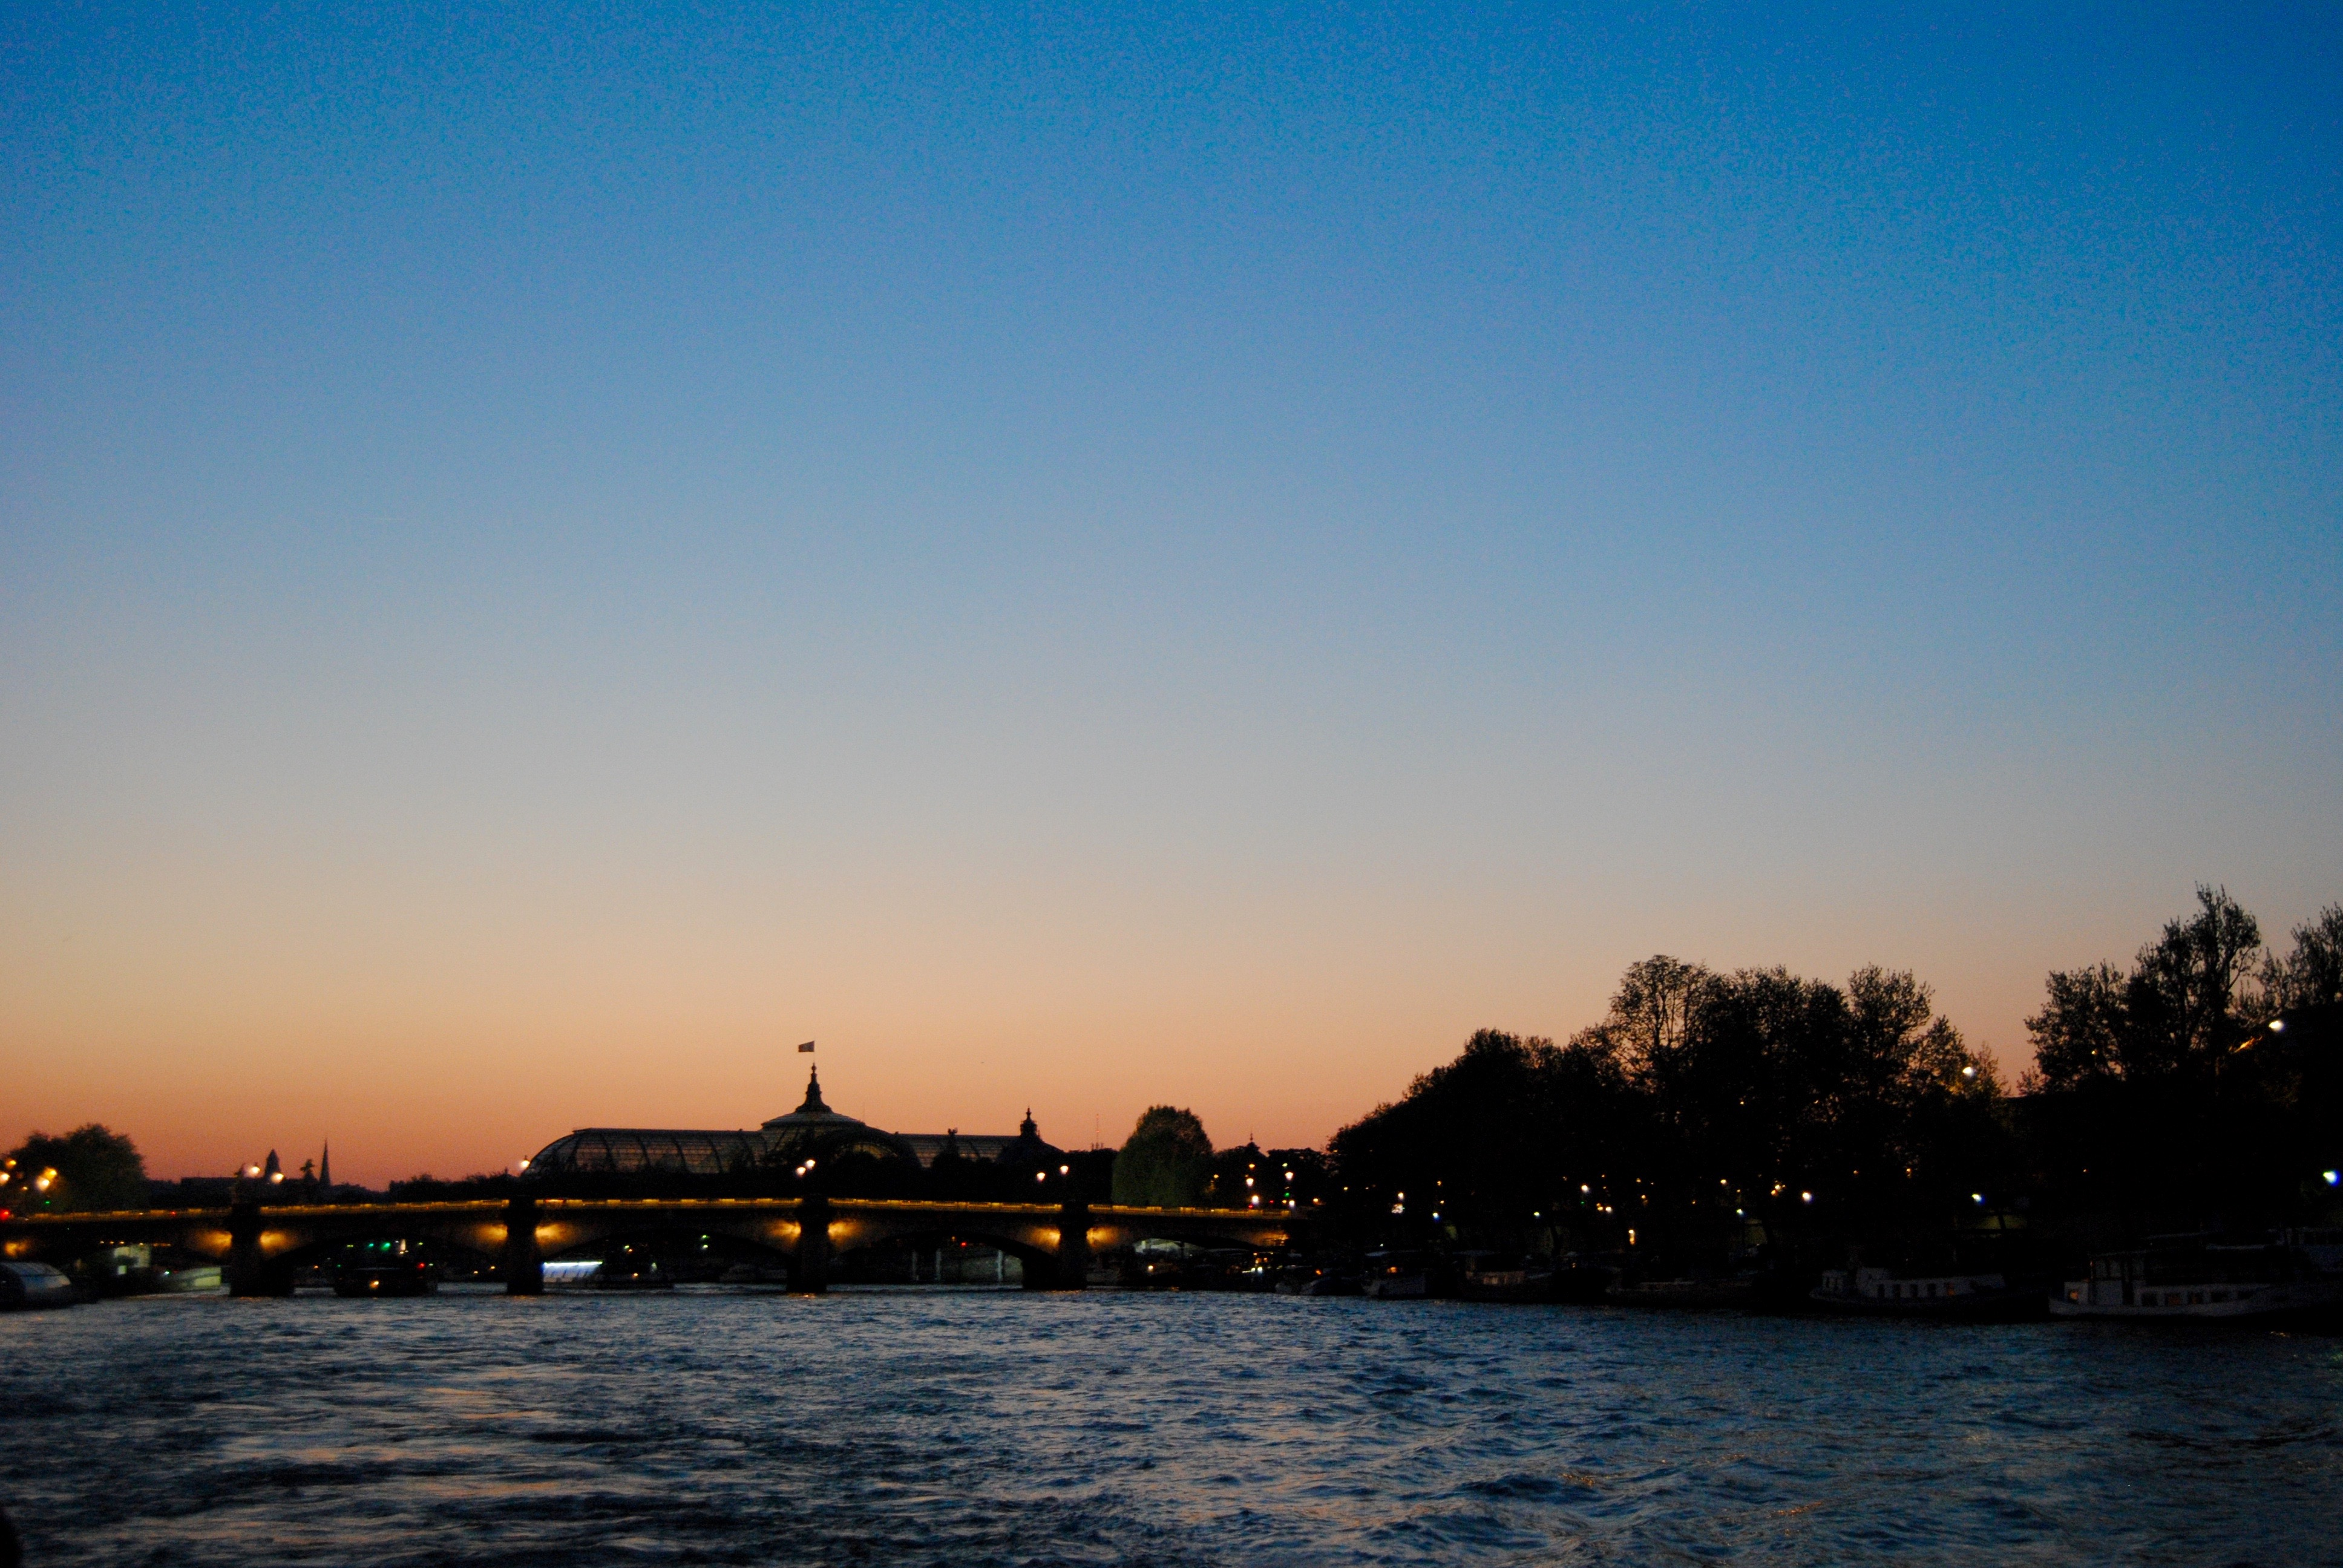 The view on the Seine.